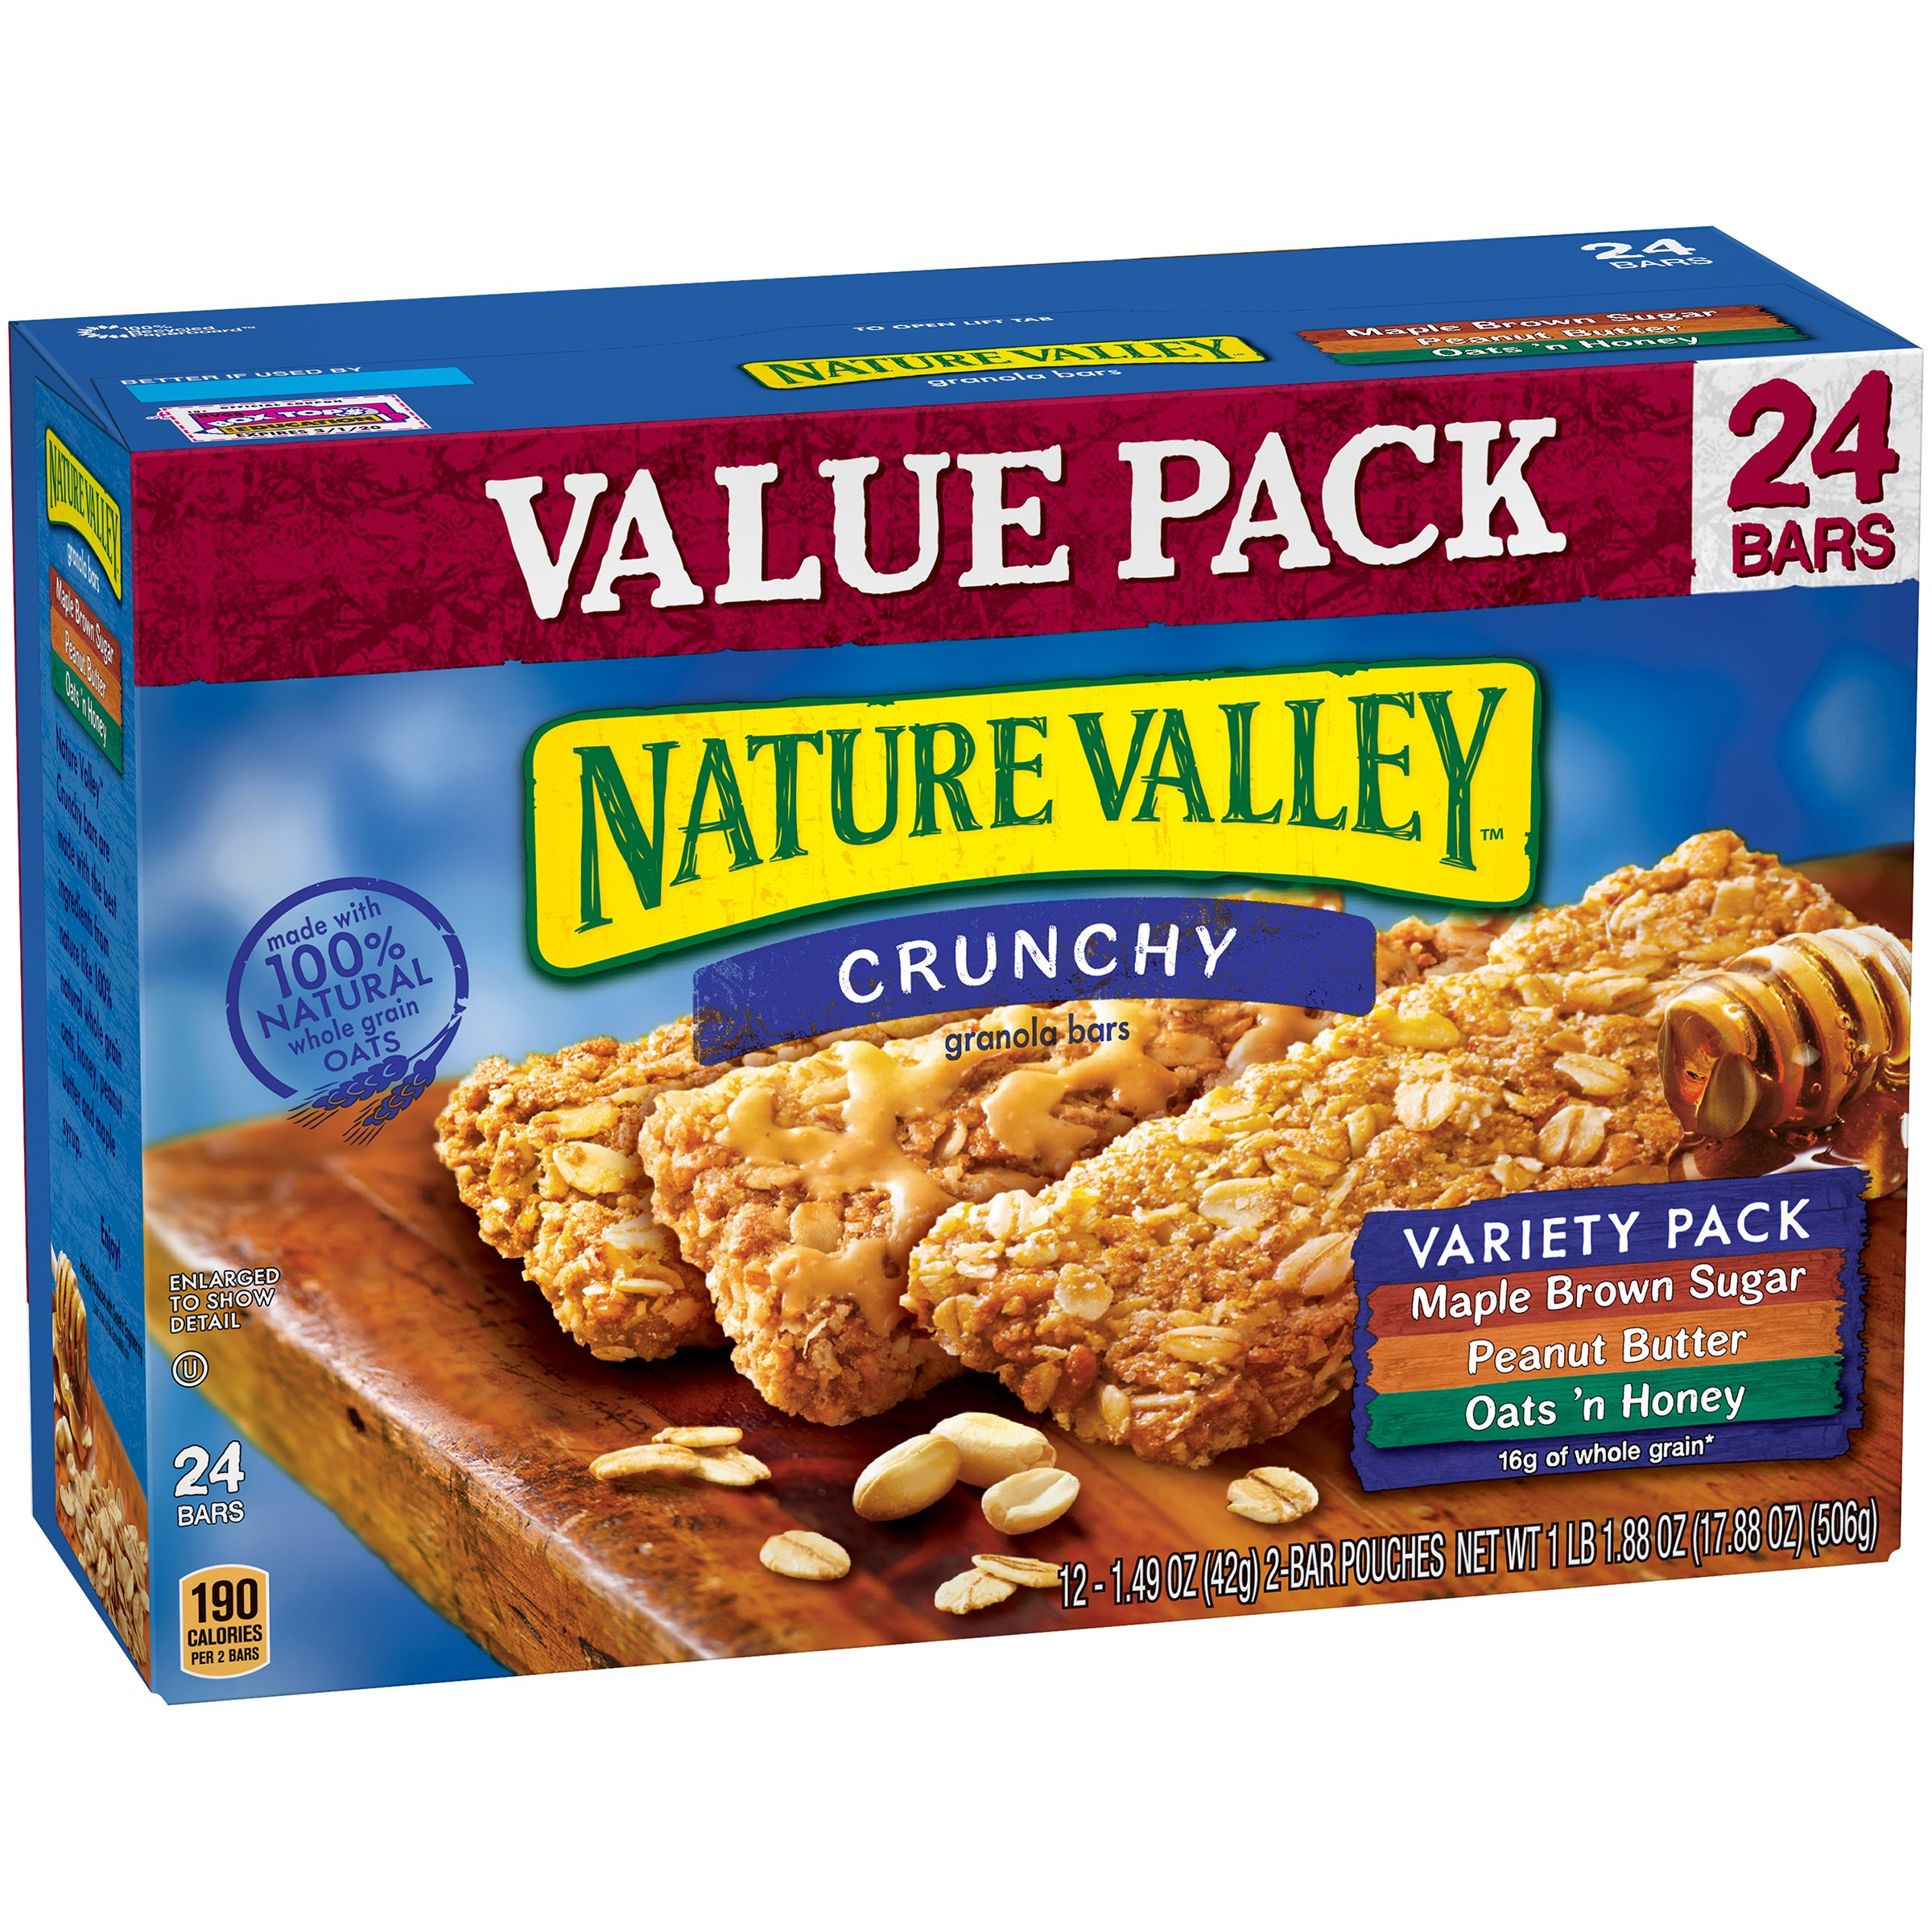 (3 Pack) Nature Valley Crunchy Granola Bar Variety Pack of Maple Brown Sugar Peanut Butter and Oats 'n Honey Bars 1.49 oz 12/2-Bar Pouches 24 ct Value Pack Box